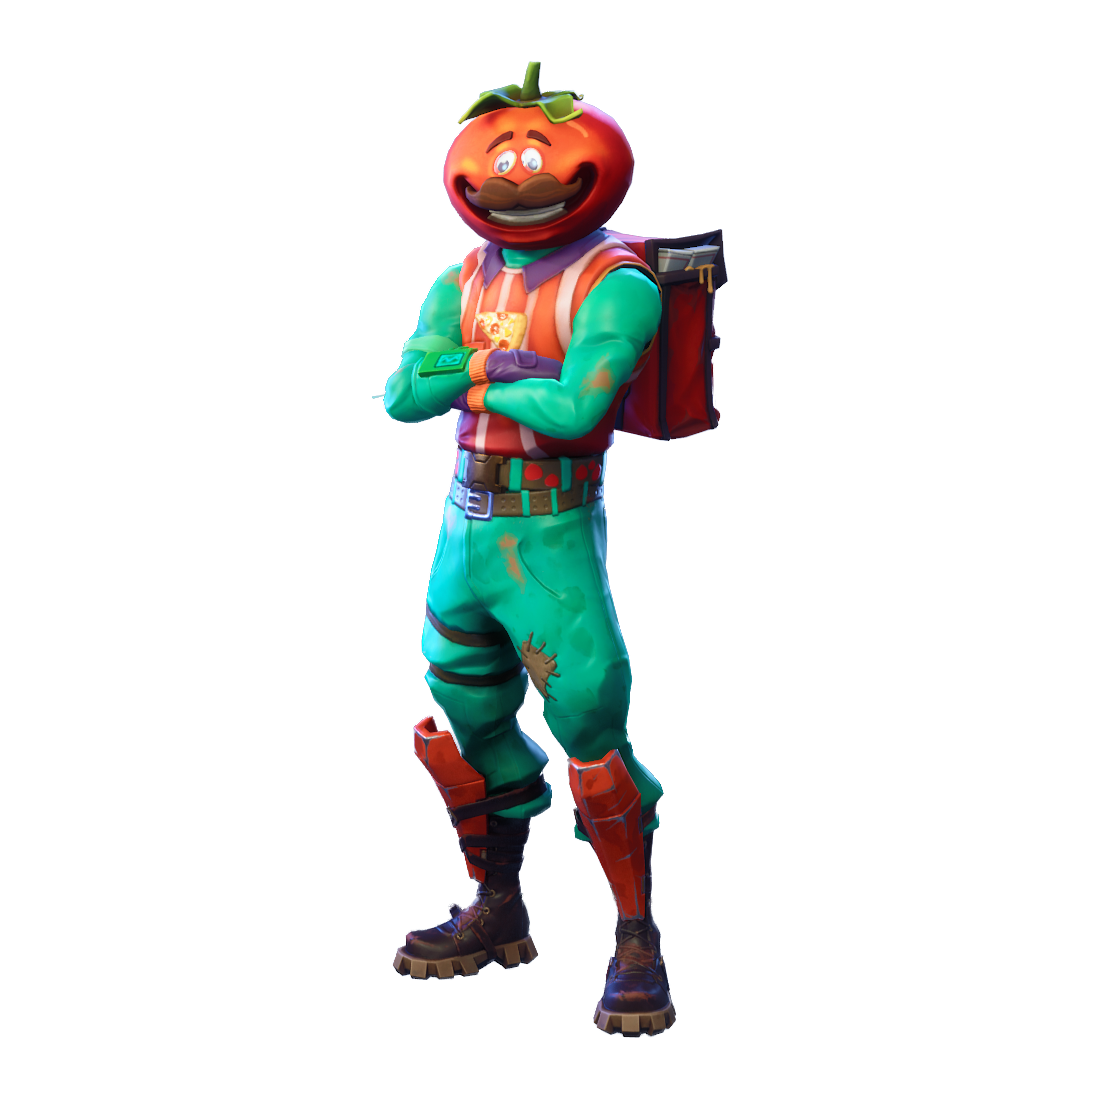 Fortnite Tomato Head Skin Fortnite Skin Monsieur Tomate